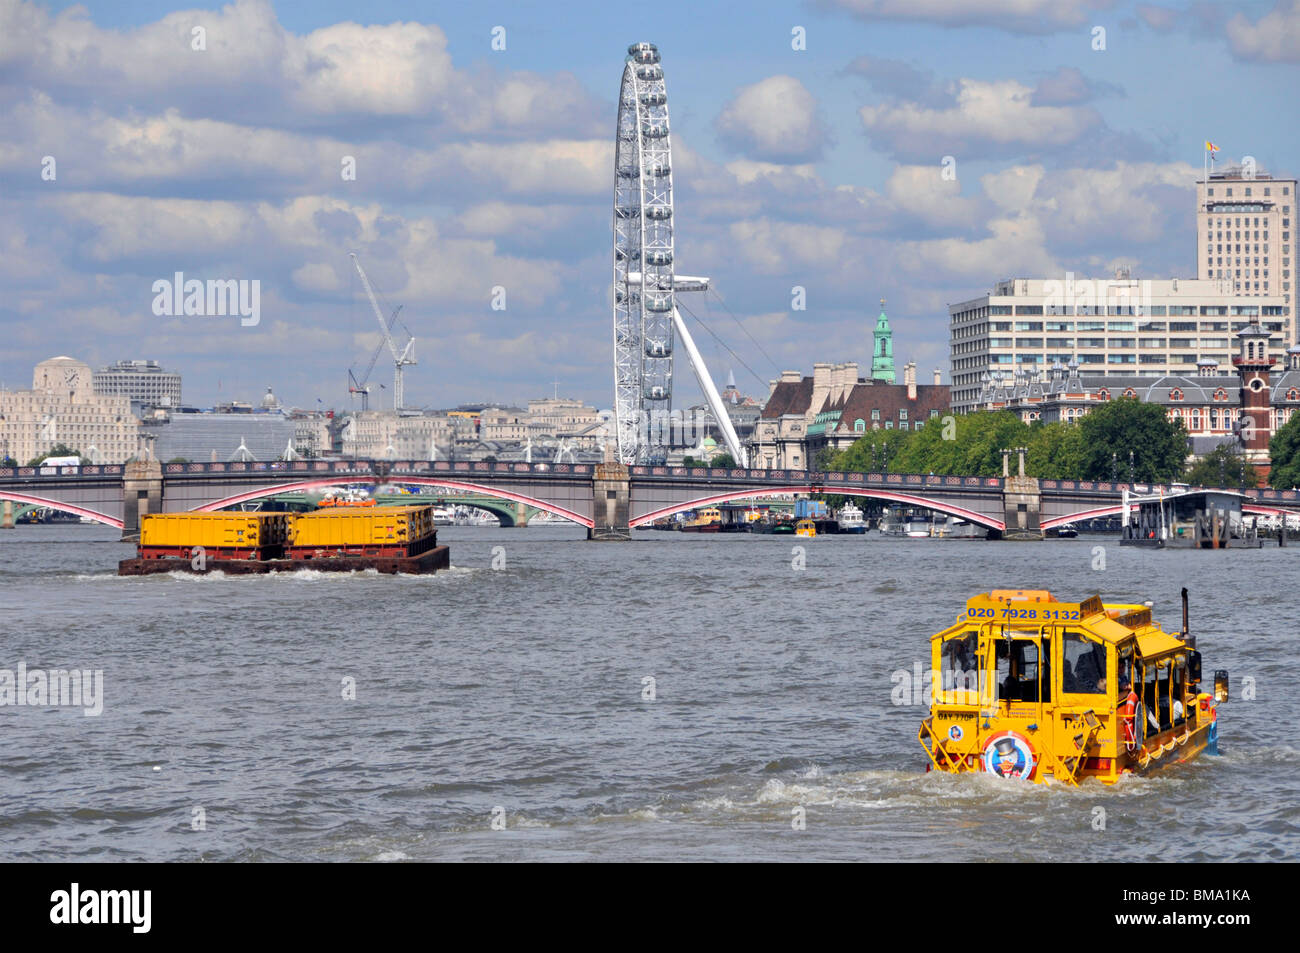 London UK business Duck Tours amphibious transport yellow sightseeing tour boat for tourist travel on River Thames - Stock Image